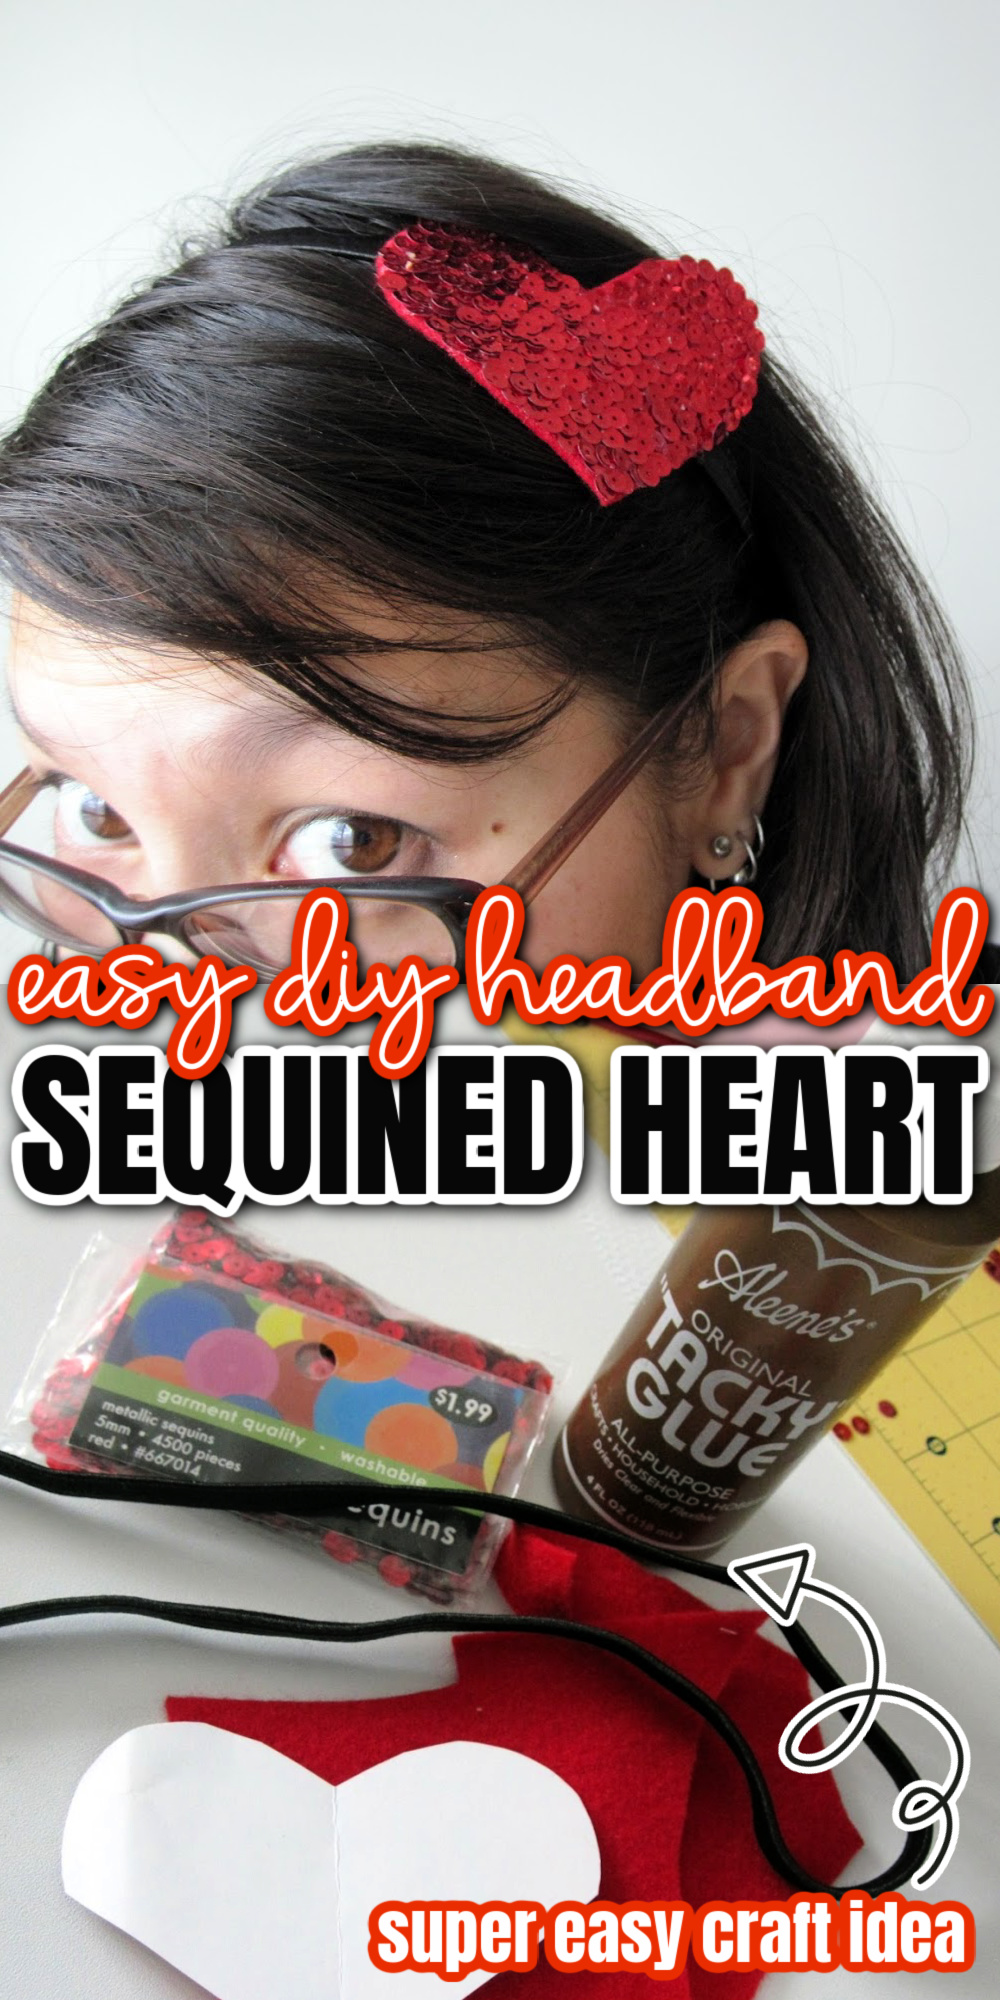 how to make a sequined heart headband